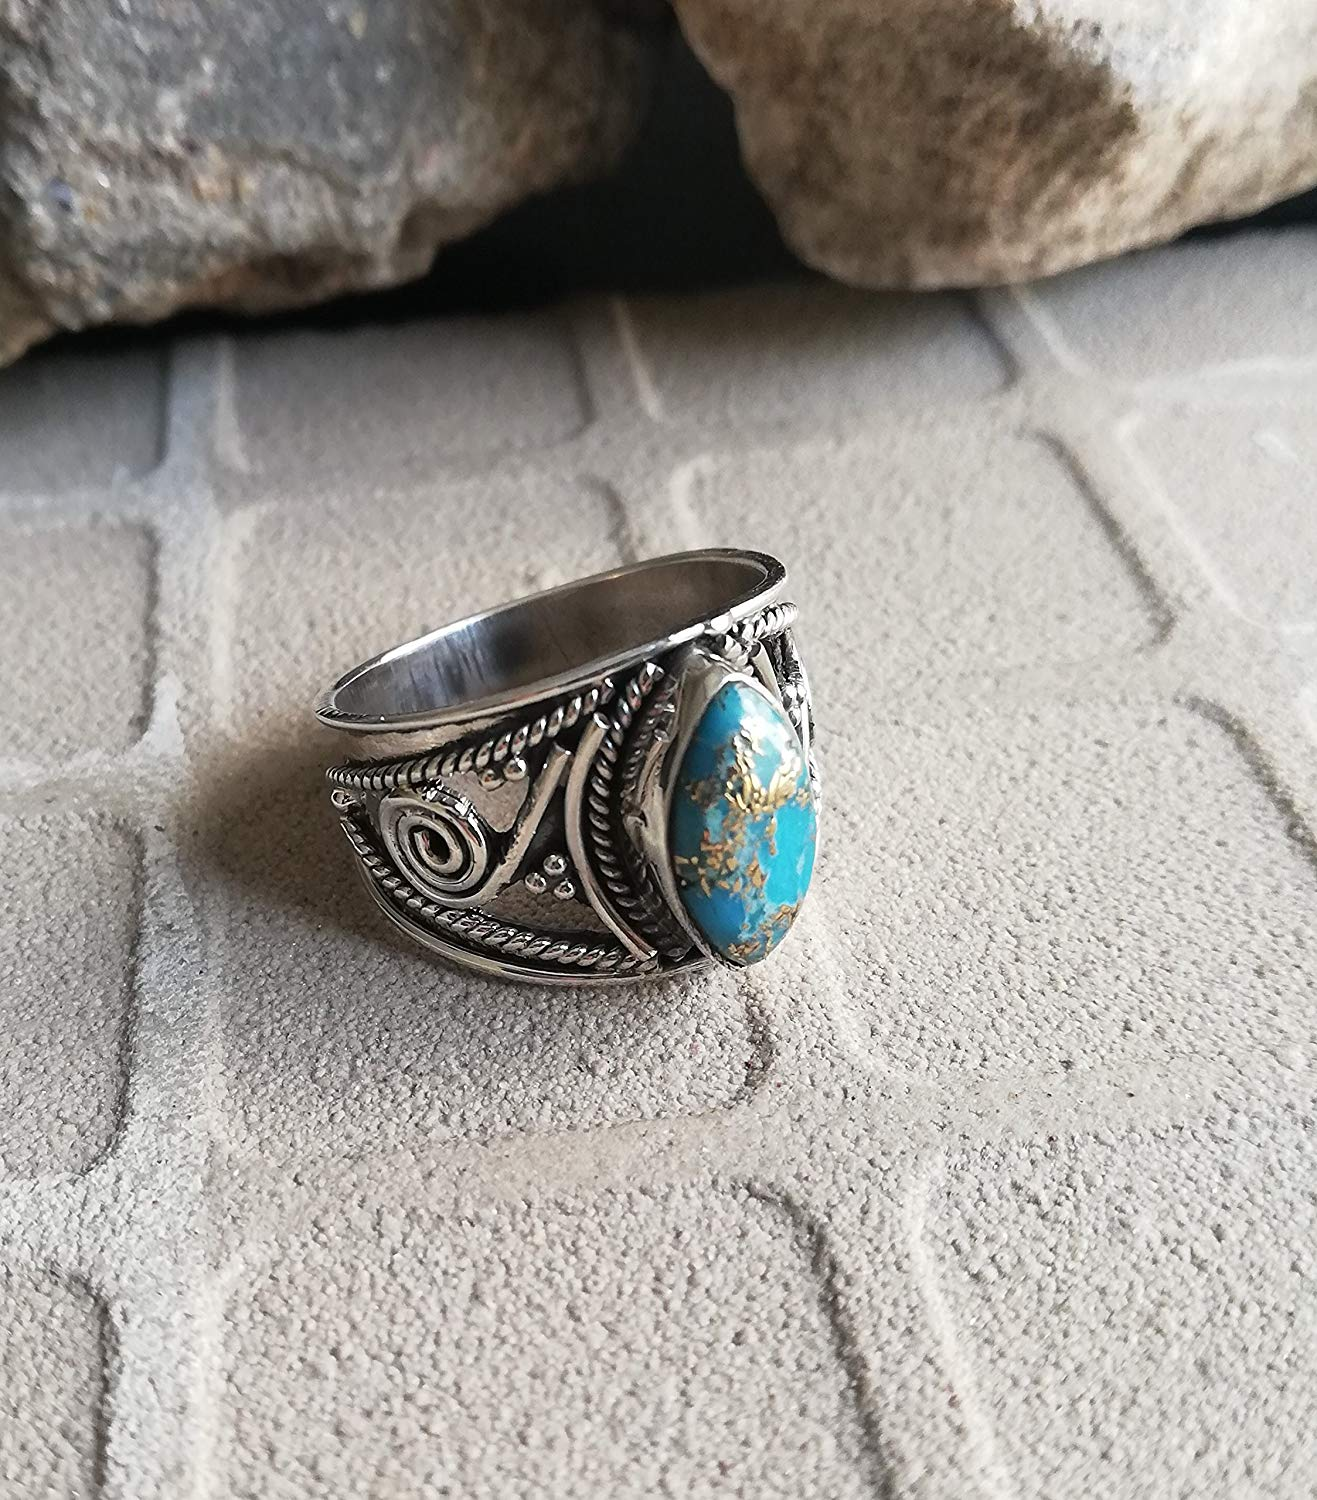 Blue Copper Turquoise Ring, 925 Sterling Silver, Wide Band Ring, Designer Ring, Marquise Shape Ring, Victorian Ring, One Of A Kind, Ocean Ring, Ethnic Ring, Western Ring, Healing Ring,US All Size Ring